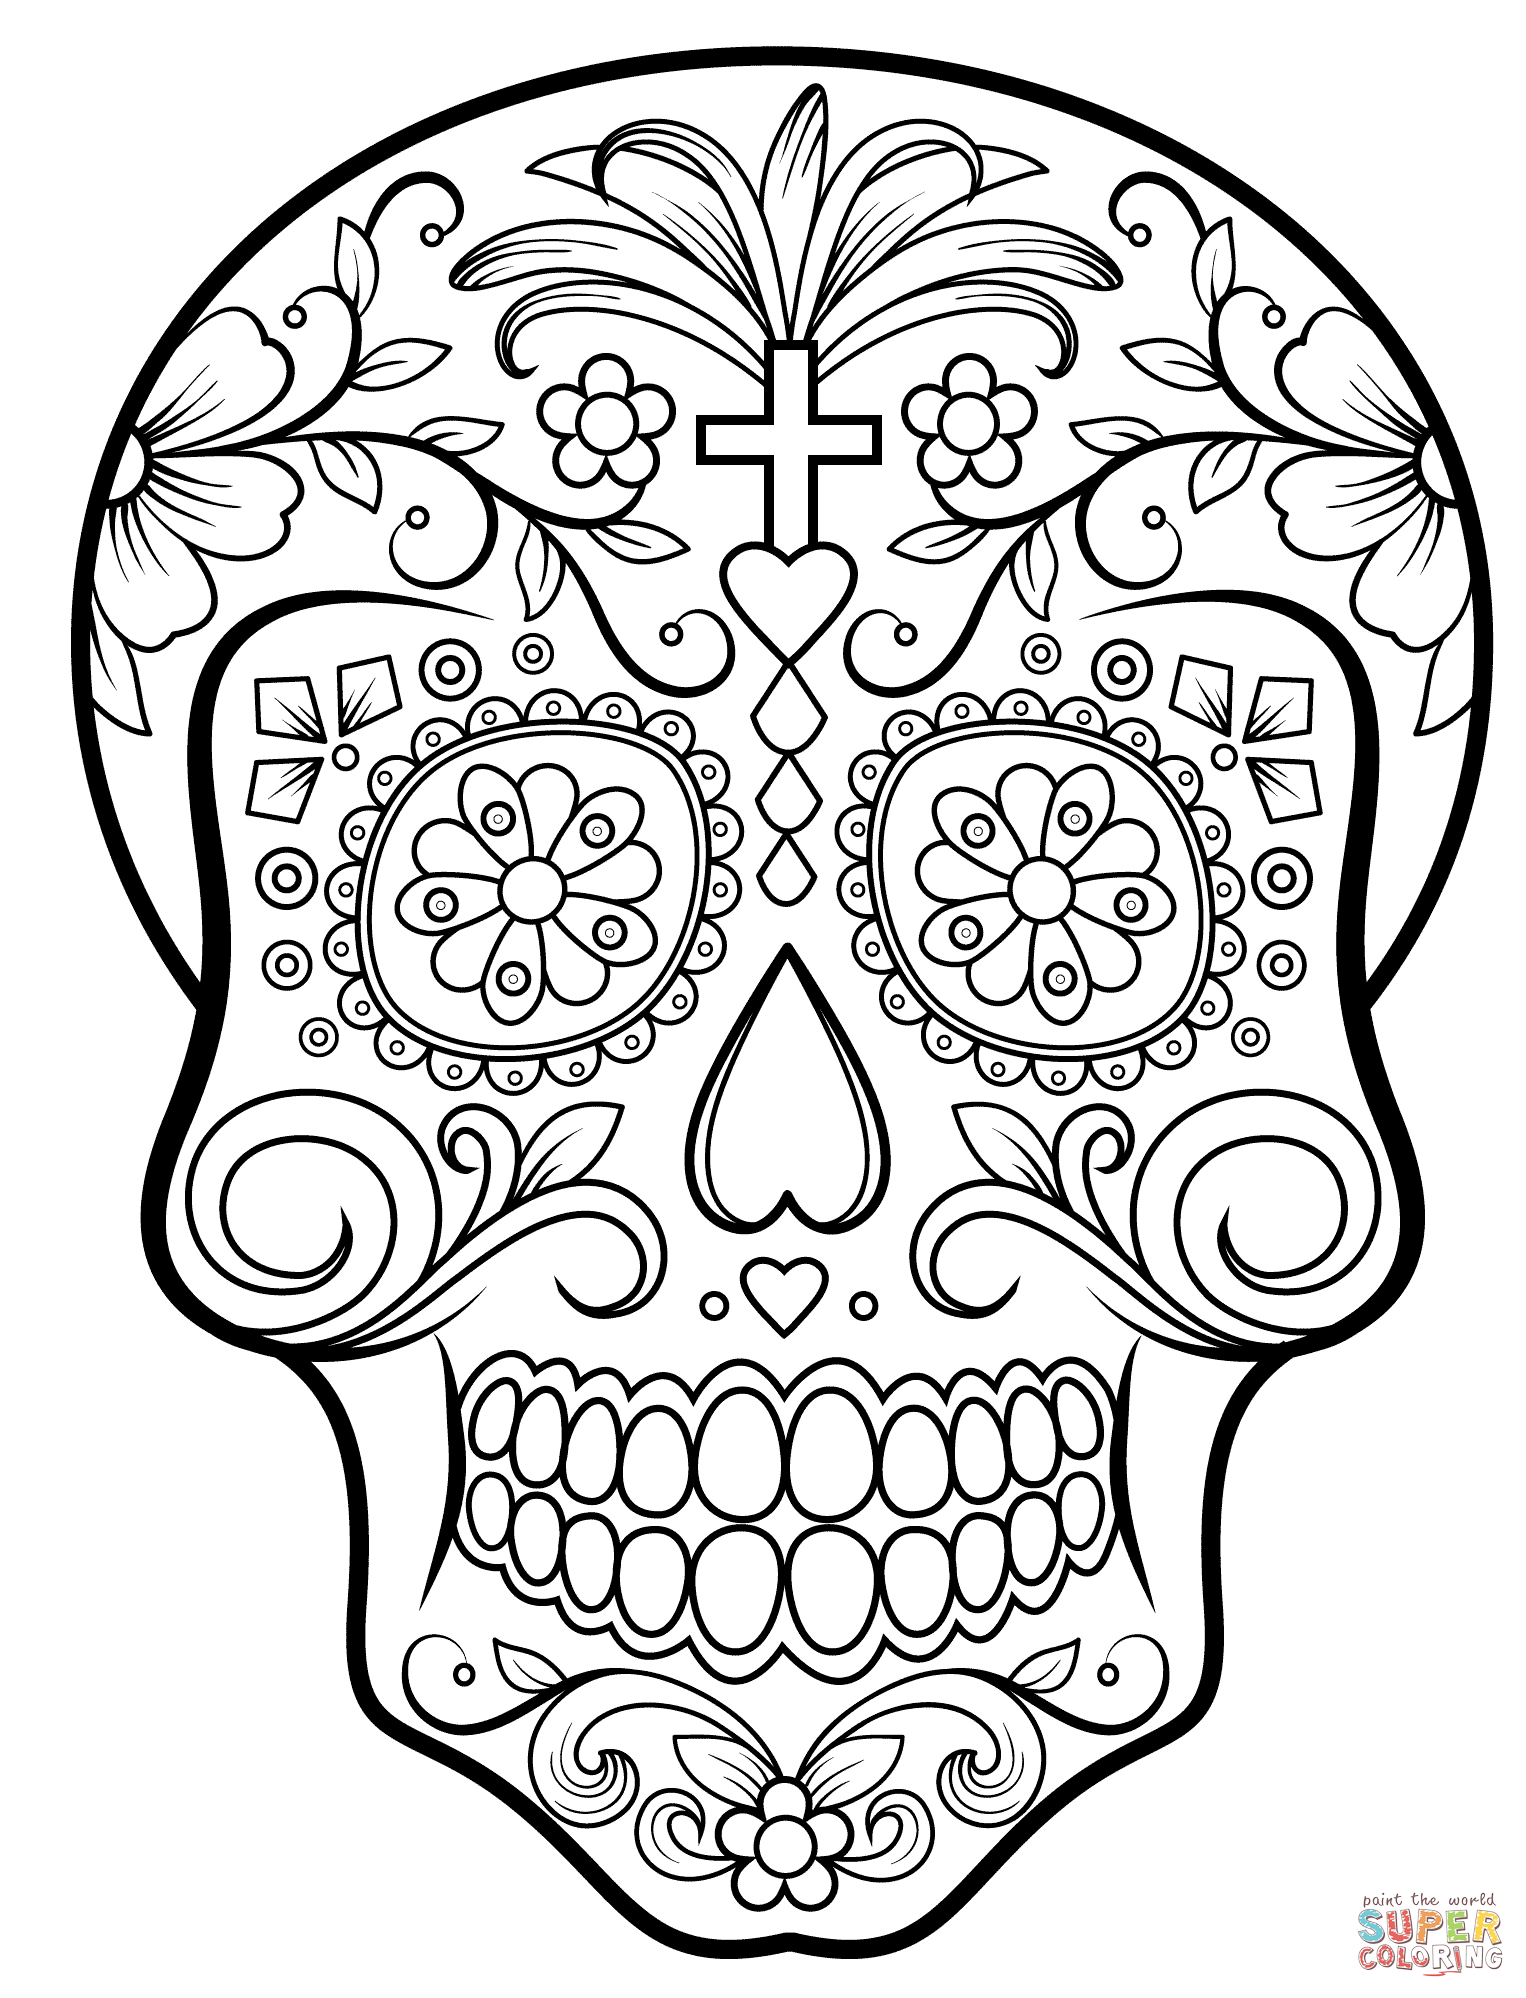 day of the dead skulls coloring pages day of the dead sugar skull coloring page free printable day skulls of dead the coloring pages